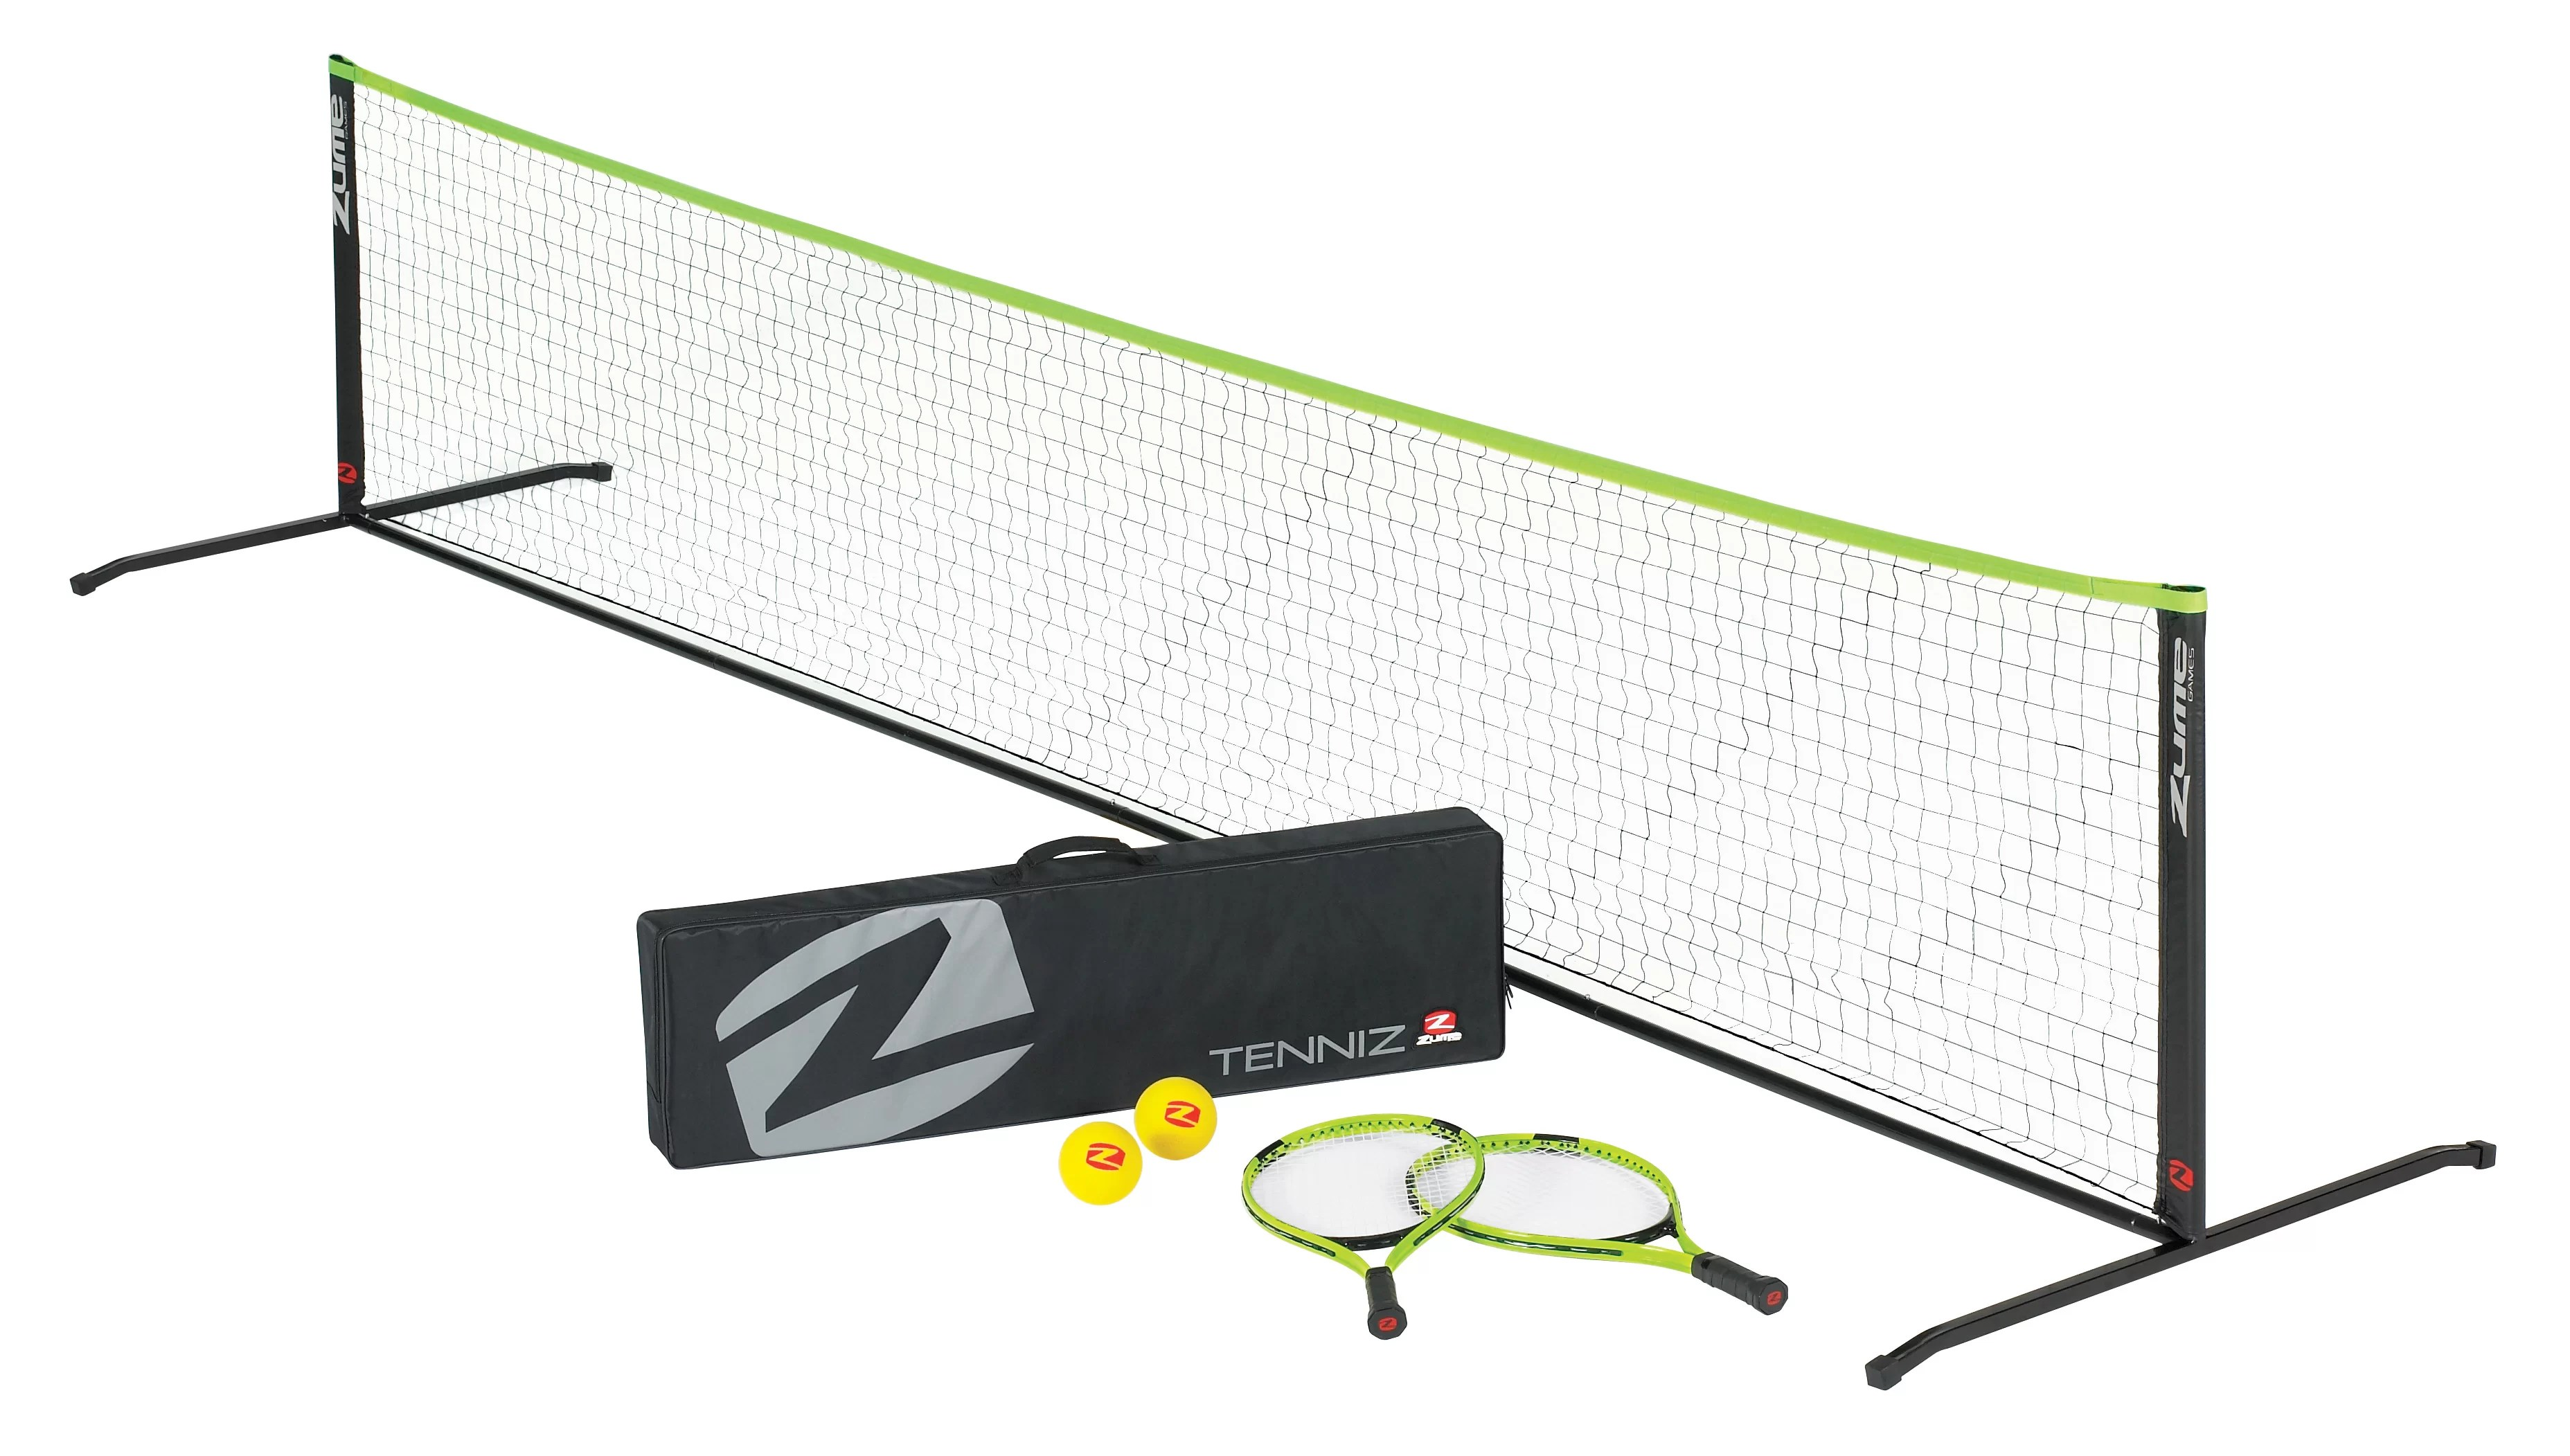 Zume Games Tenniz Set Amp Reviews